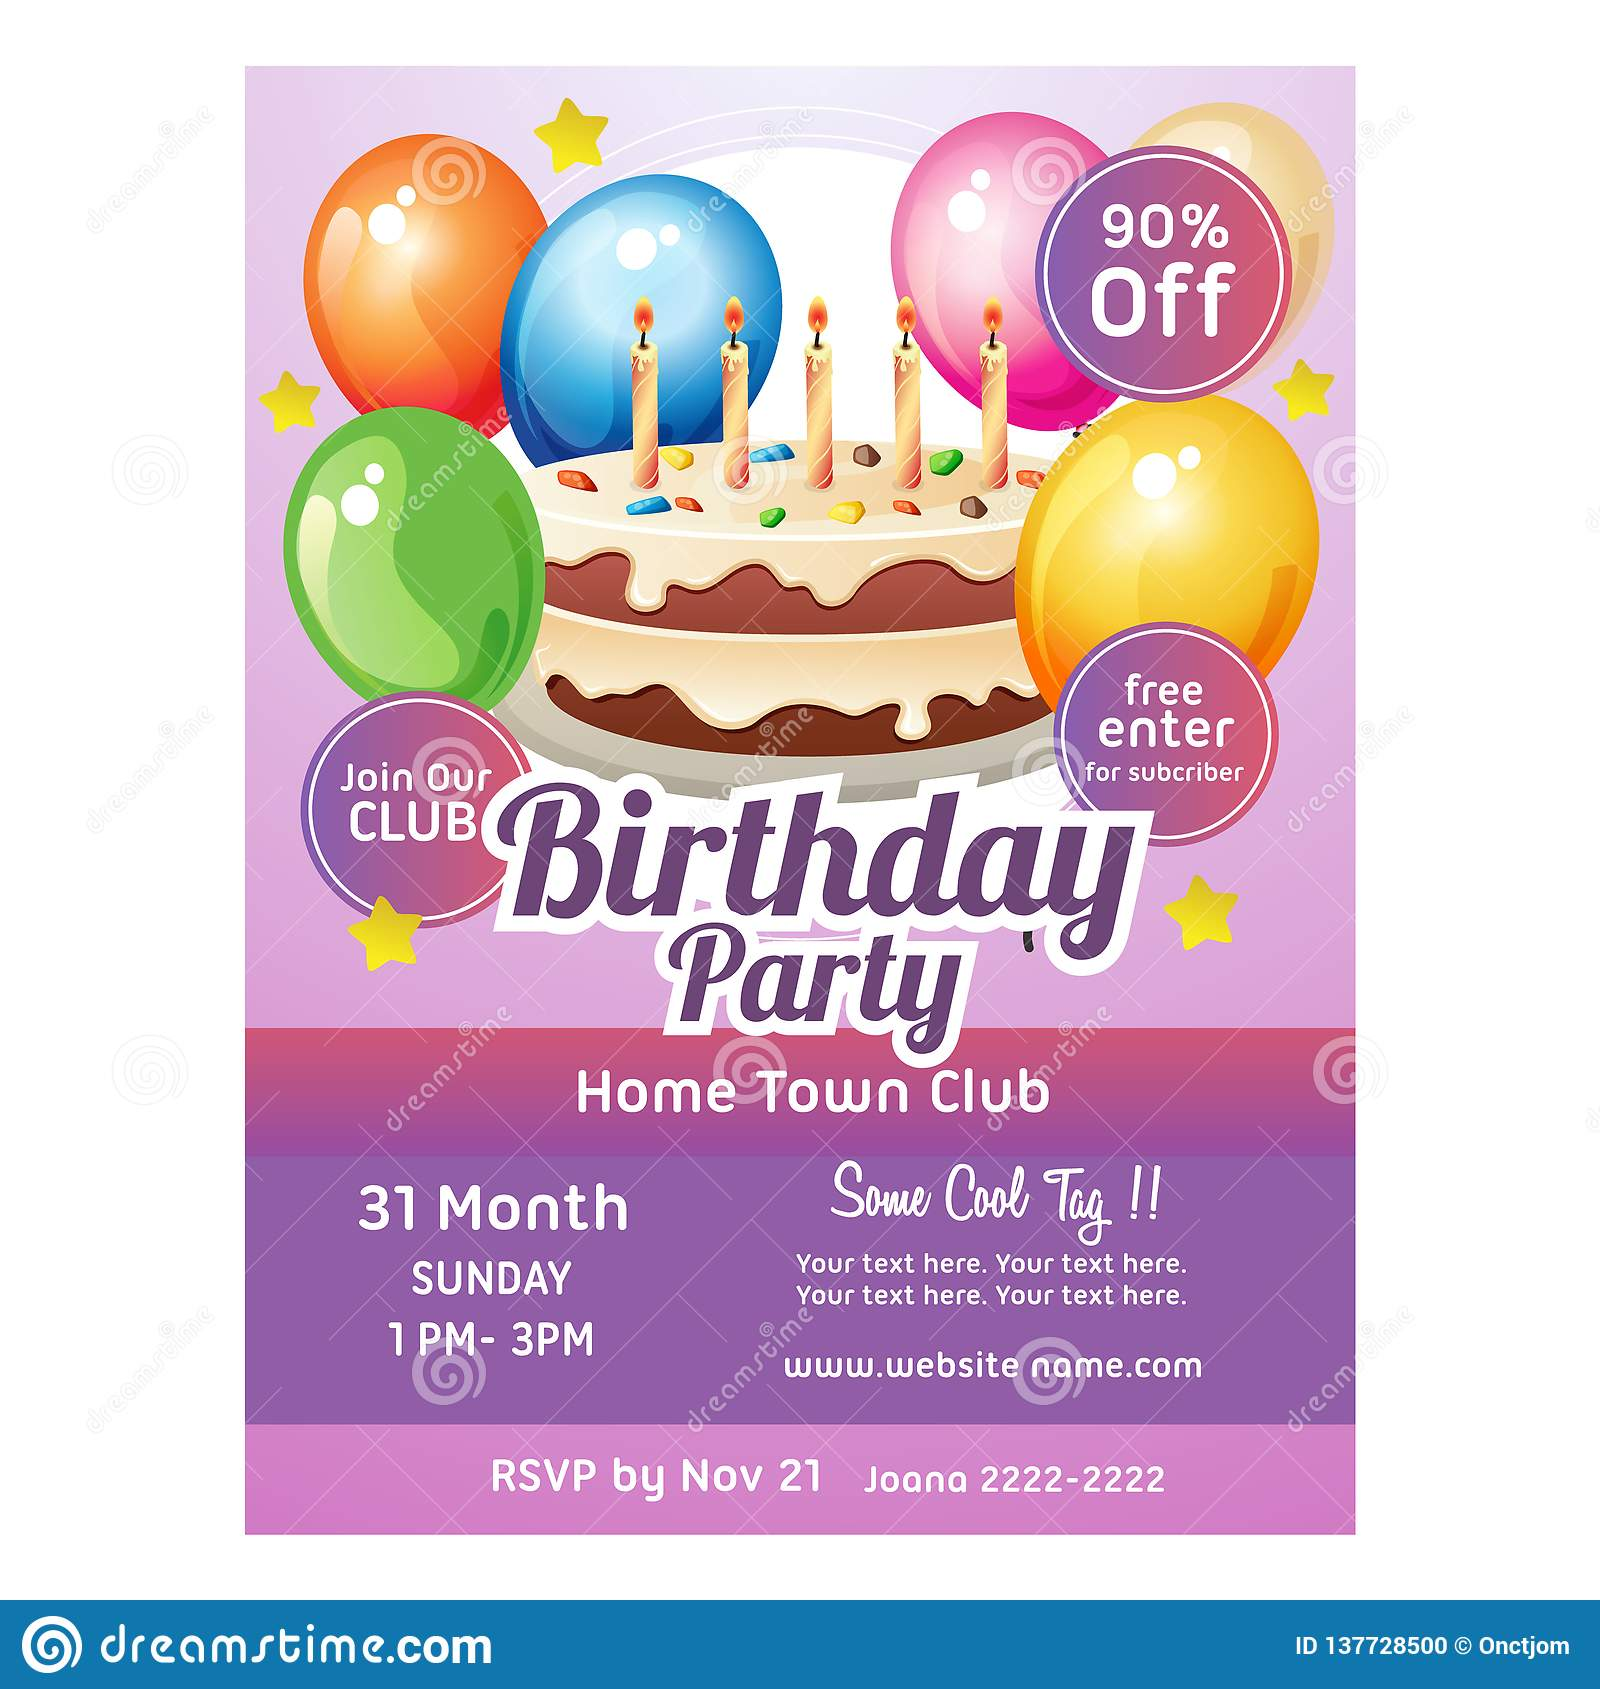 Birthday Poster Template Big Cake And Balloon Decoration Stock